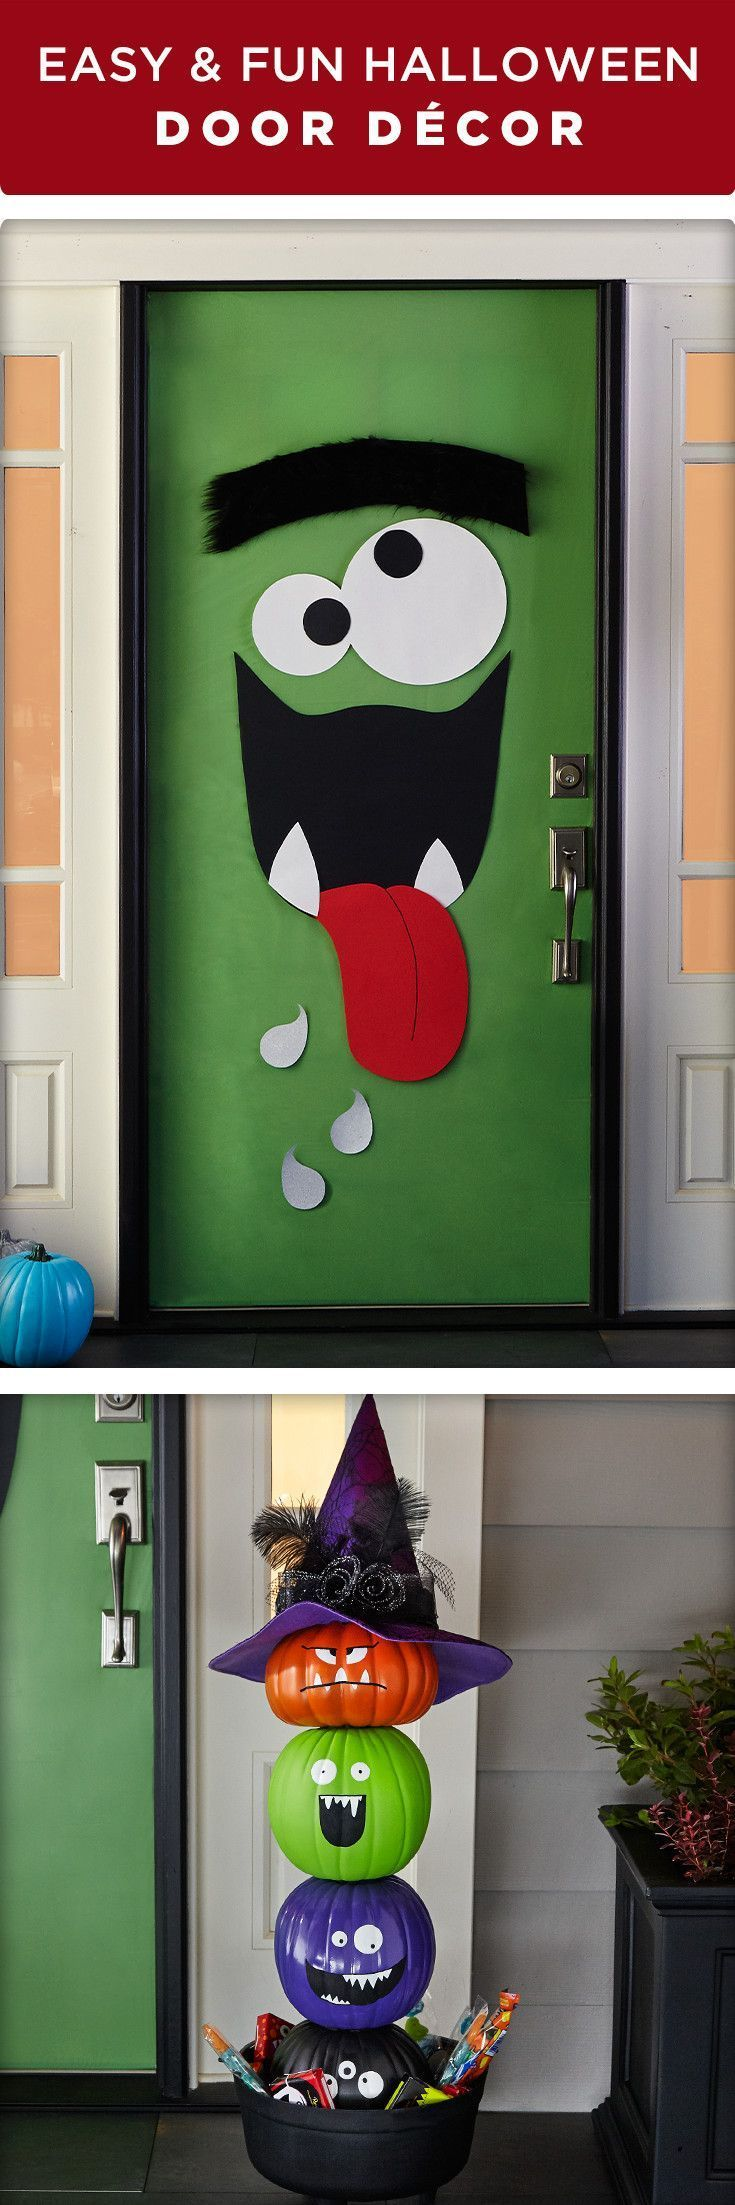 Decorate your front door for trick or treaters this Halloween. These décor ideas are easy and fun to make! Find everything you need for these projects at your local Michaels.